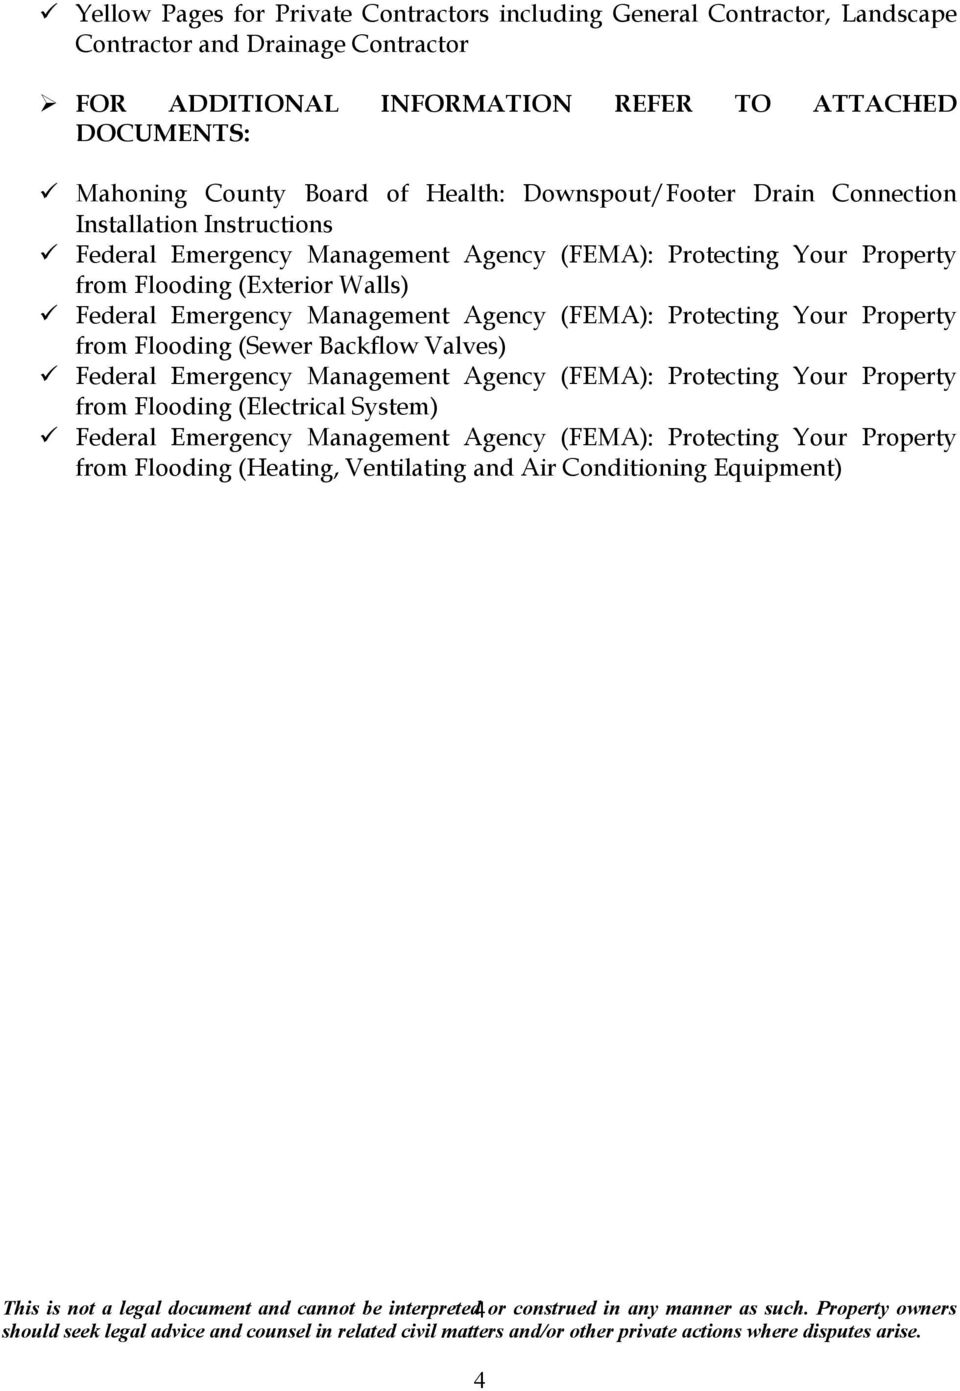 Walls) Federal Emergency Management Agency (FEMA): Protecting Your Property from Flooding (Sewer Backflow Valves) Federal Emergency Management Agency (FEMA): Protecting Your